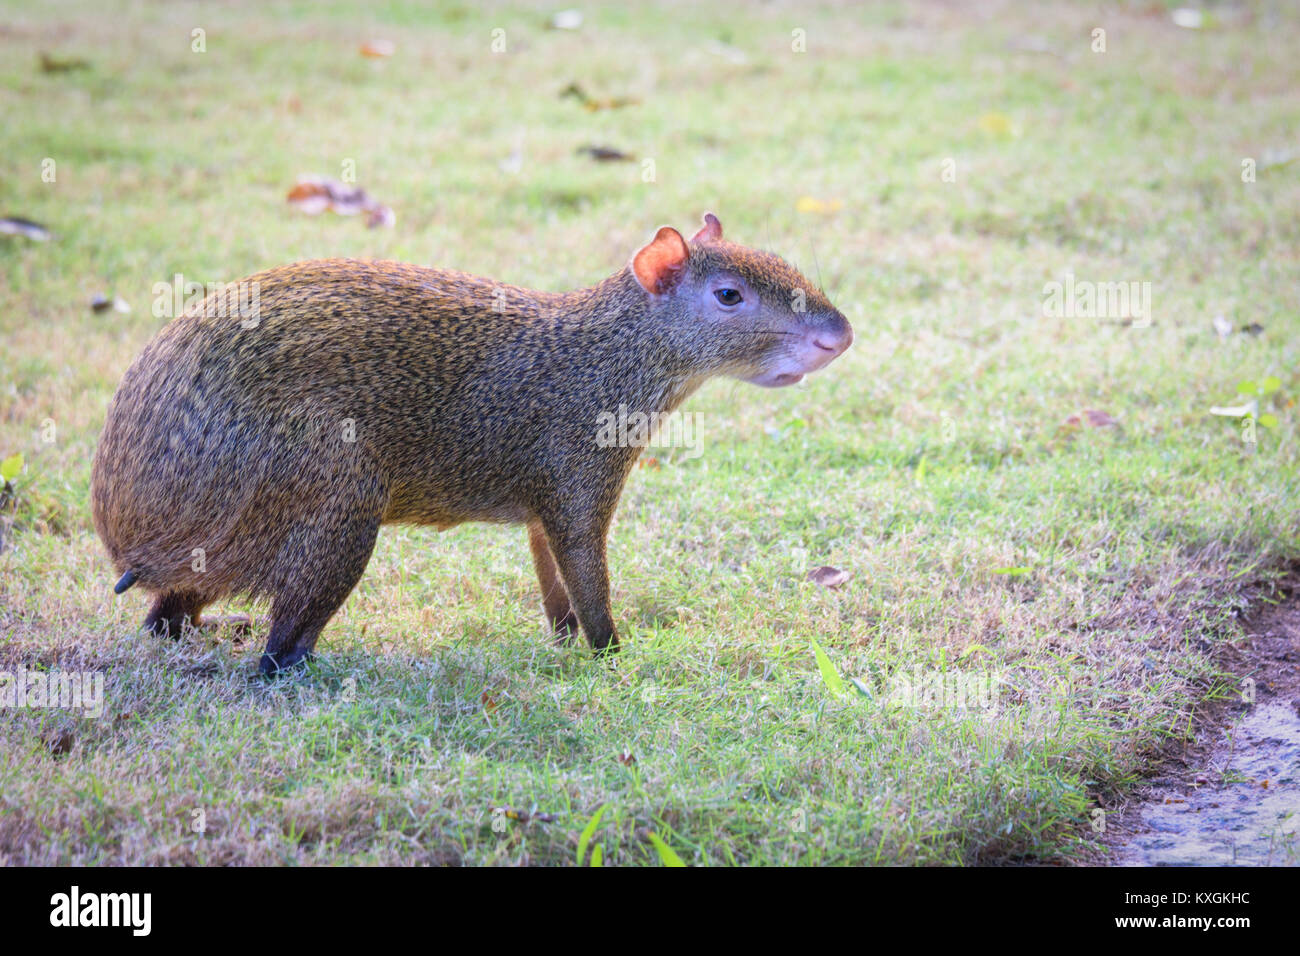 Agouti agoutis or Sereque rodent on green grass. Rodents of the Caribbean. - Stock Image